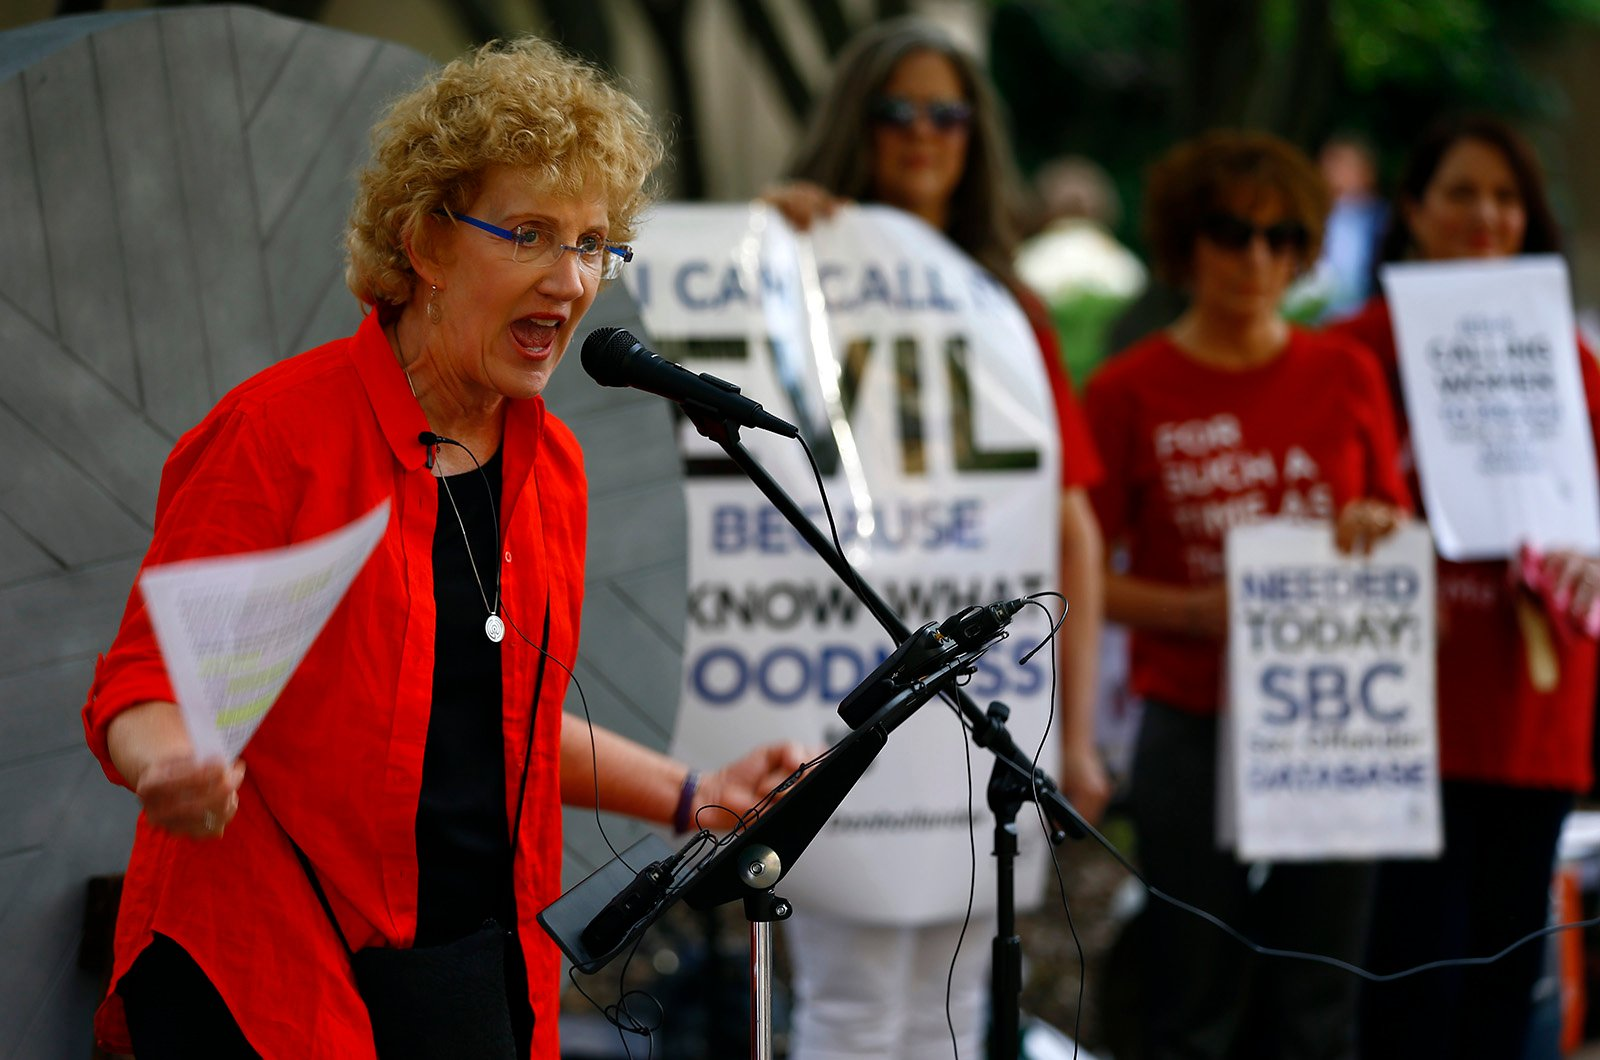 Christa Brown talks about her abuse at a rally outside the annual meeting of the Southern Baptist Convention at the Birmingham-Jefferson Convention Complex on June 11, 2019, in Birmingham, Ala. RNS photo by Butch Dill